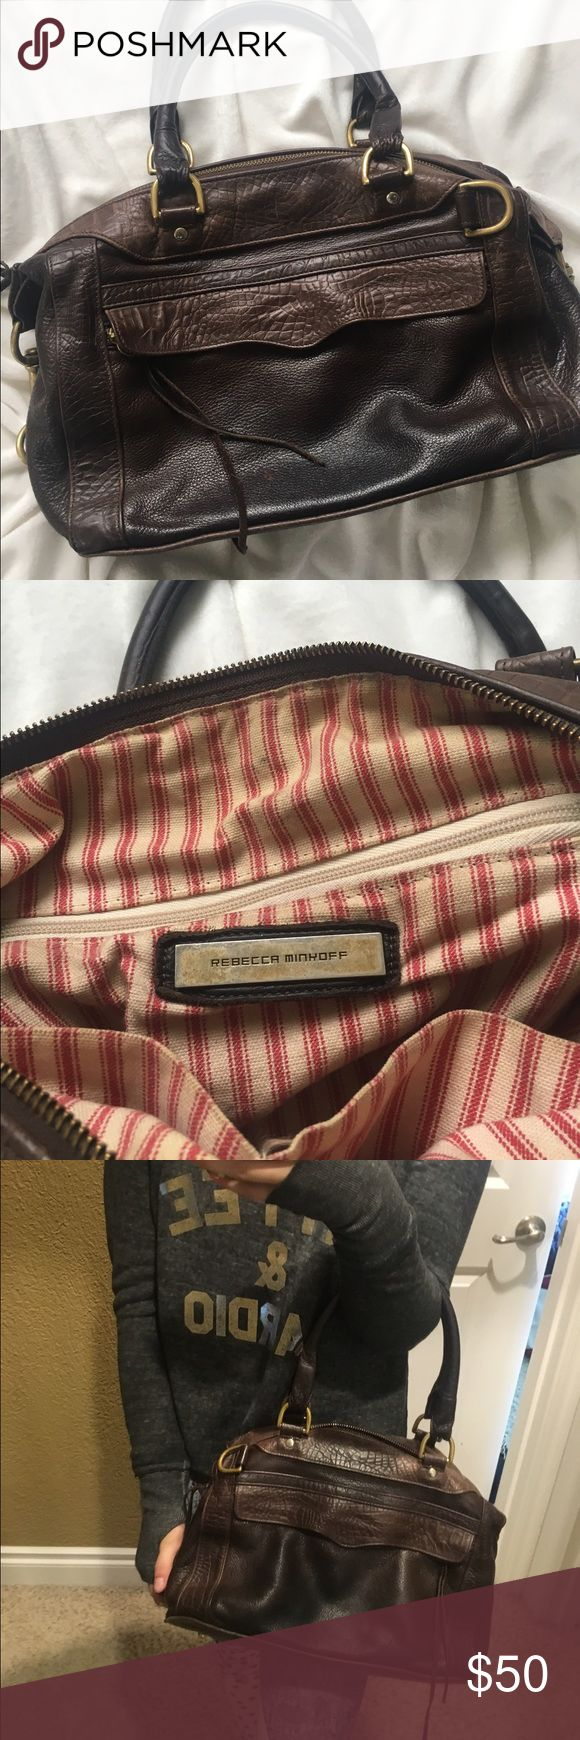 Rebecca Minkoff Bag Super cute brown leather Rebecca Minkoff purse! Perfect for a girl on the go. Has slight stain above the label on the inside (pictured). Still in great condition! Rebecca Minkoff Bags Hobos